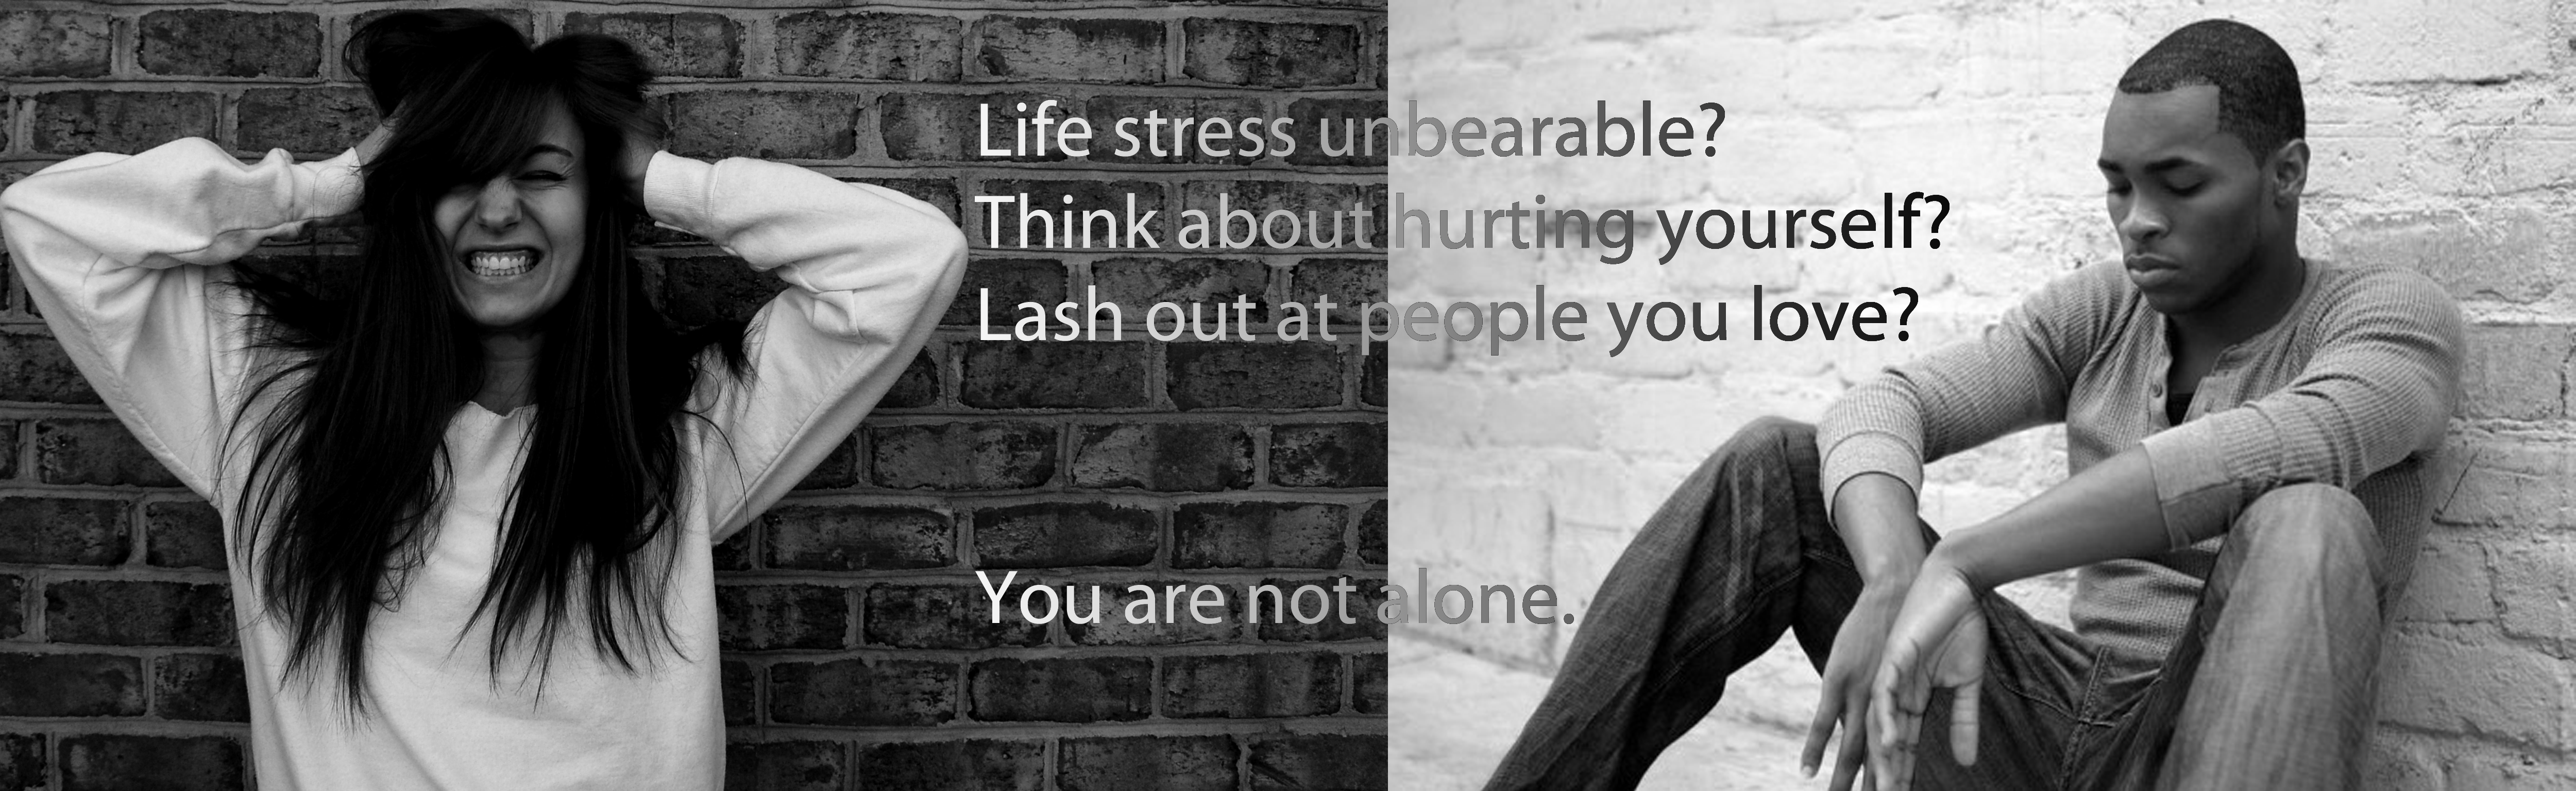 Life stress unbearable? Think about hurting yourself? Lash out at people you love? You are not alone.